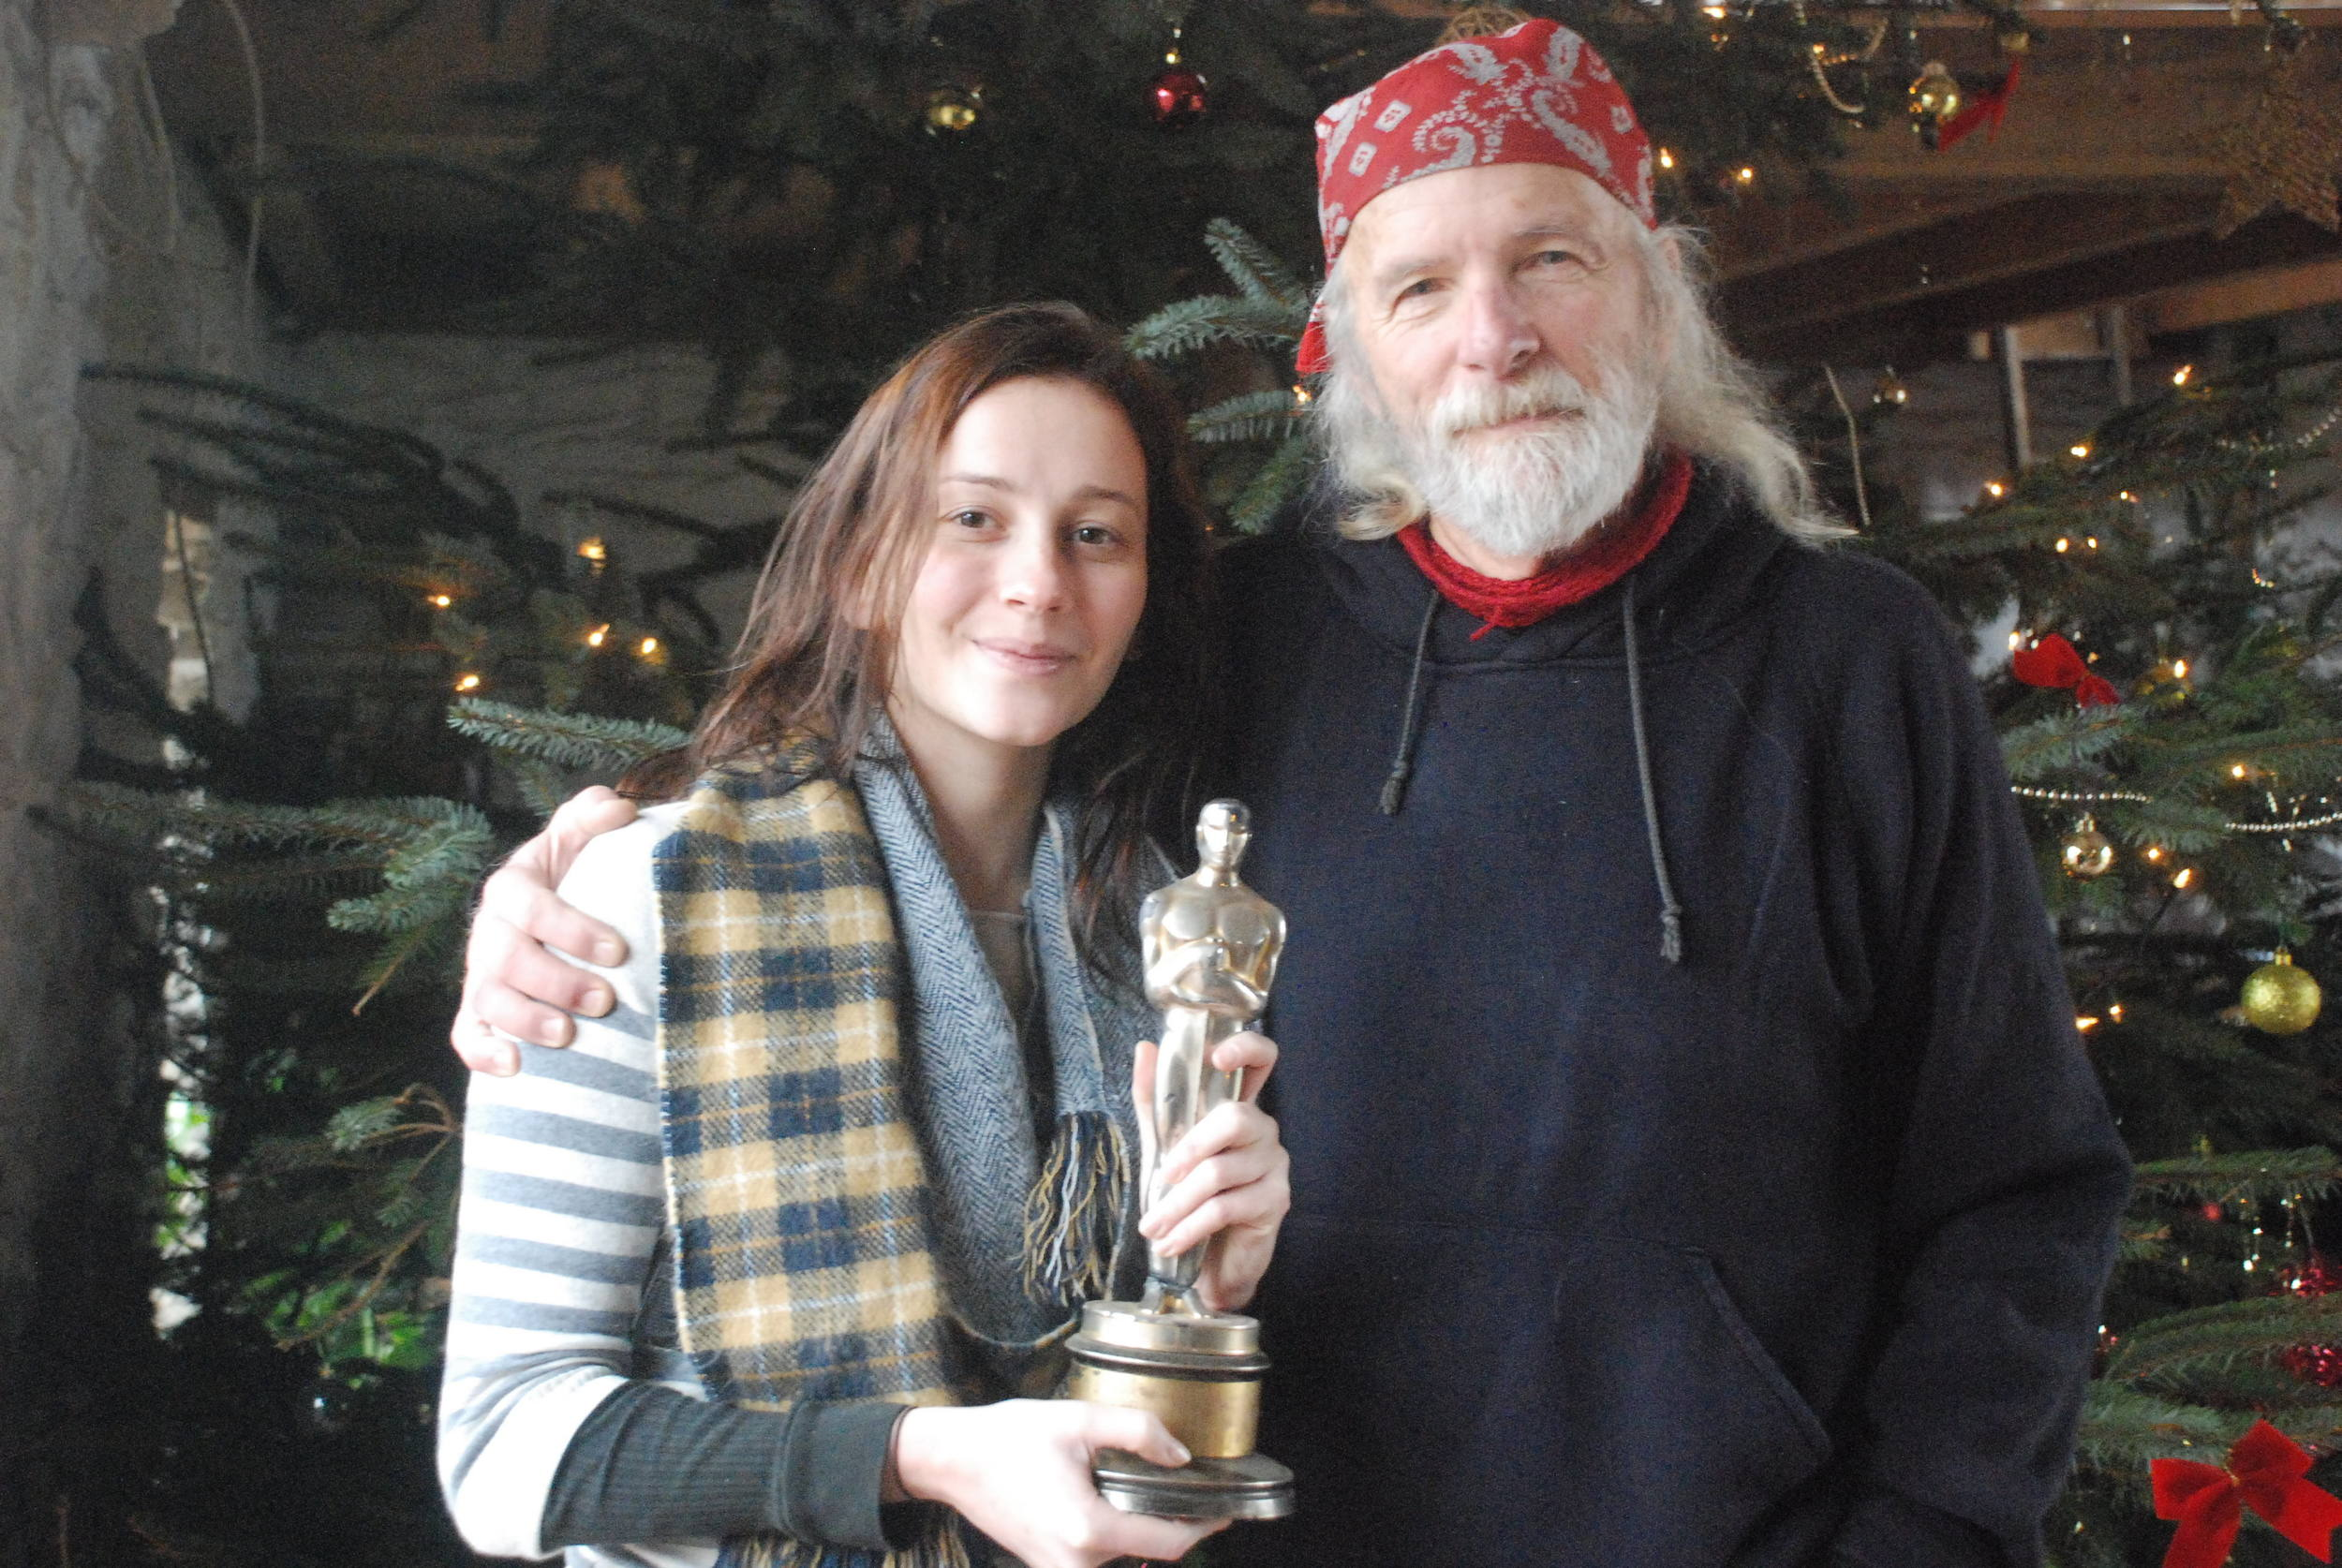 The man himself - He refused to take a photo with the Oscar unless I was the one who was holding it!